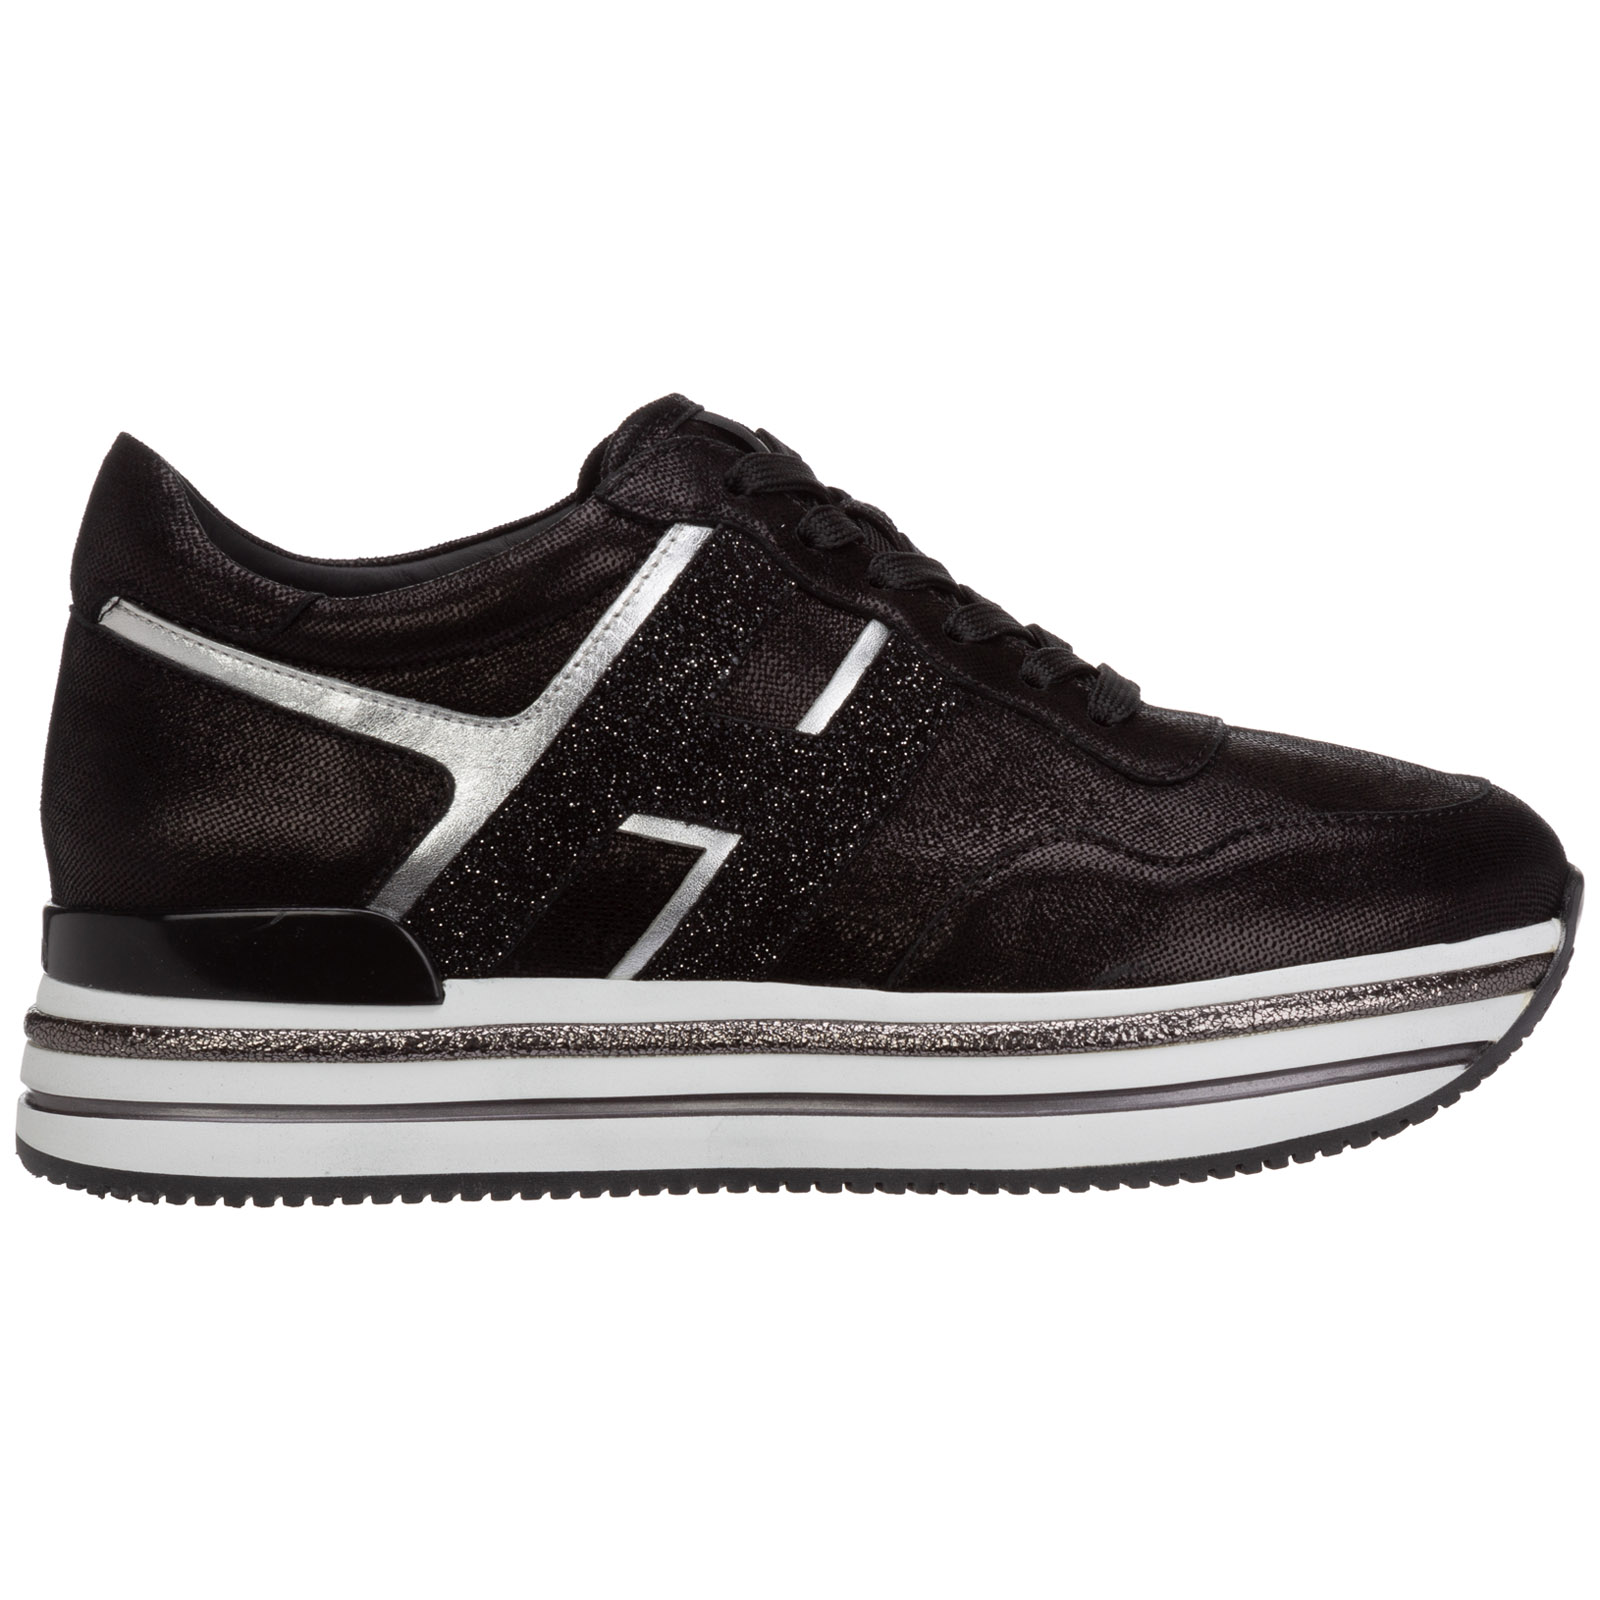 Women's shoes leather trainers sneakers midi h222